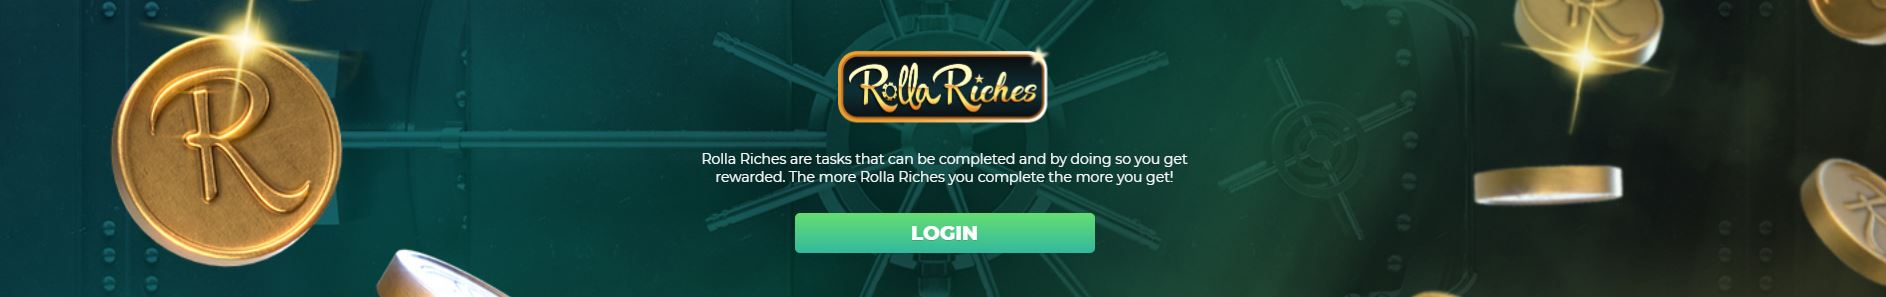 Rolla Riches